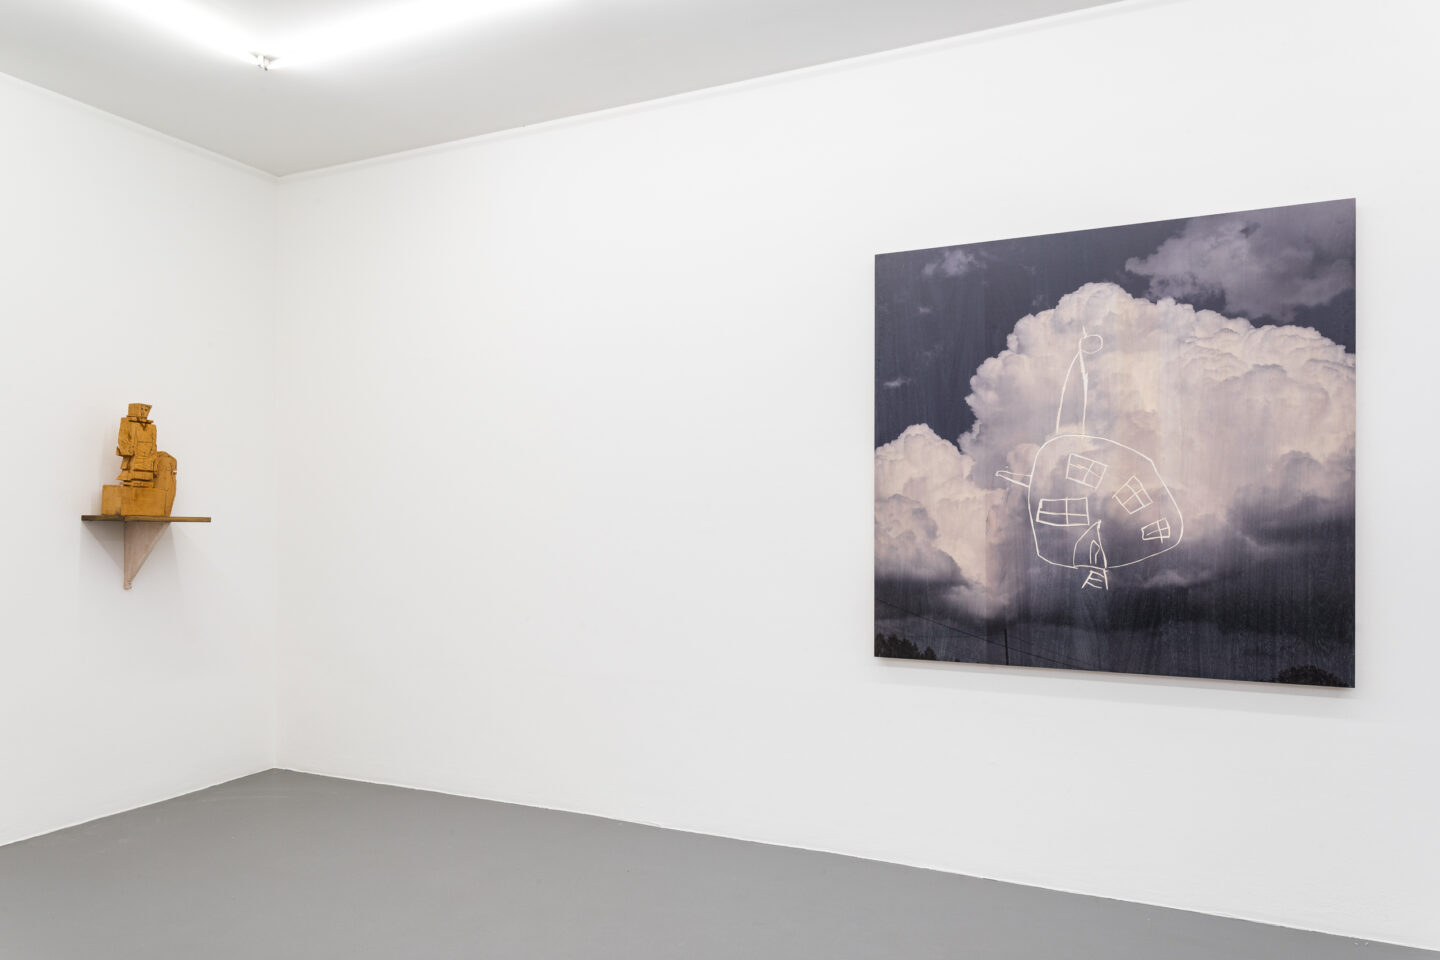 Exhibition View Stephan Balkenhol Soloshow at Mai 36, Zurich, 2019 / Courtesy: the artist and Mai 36